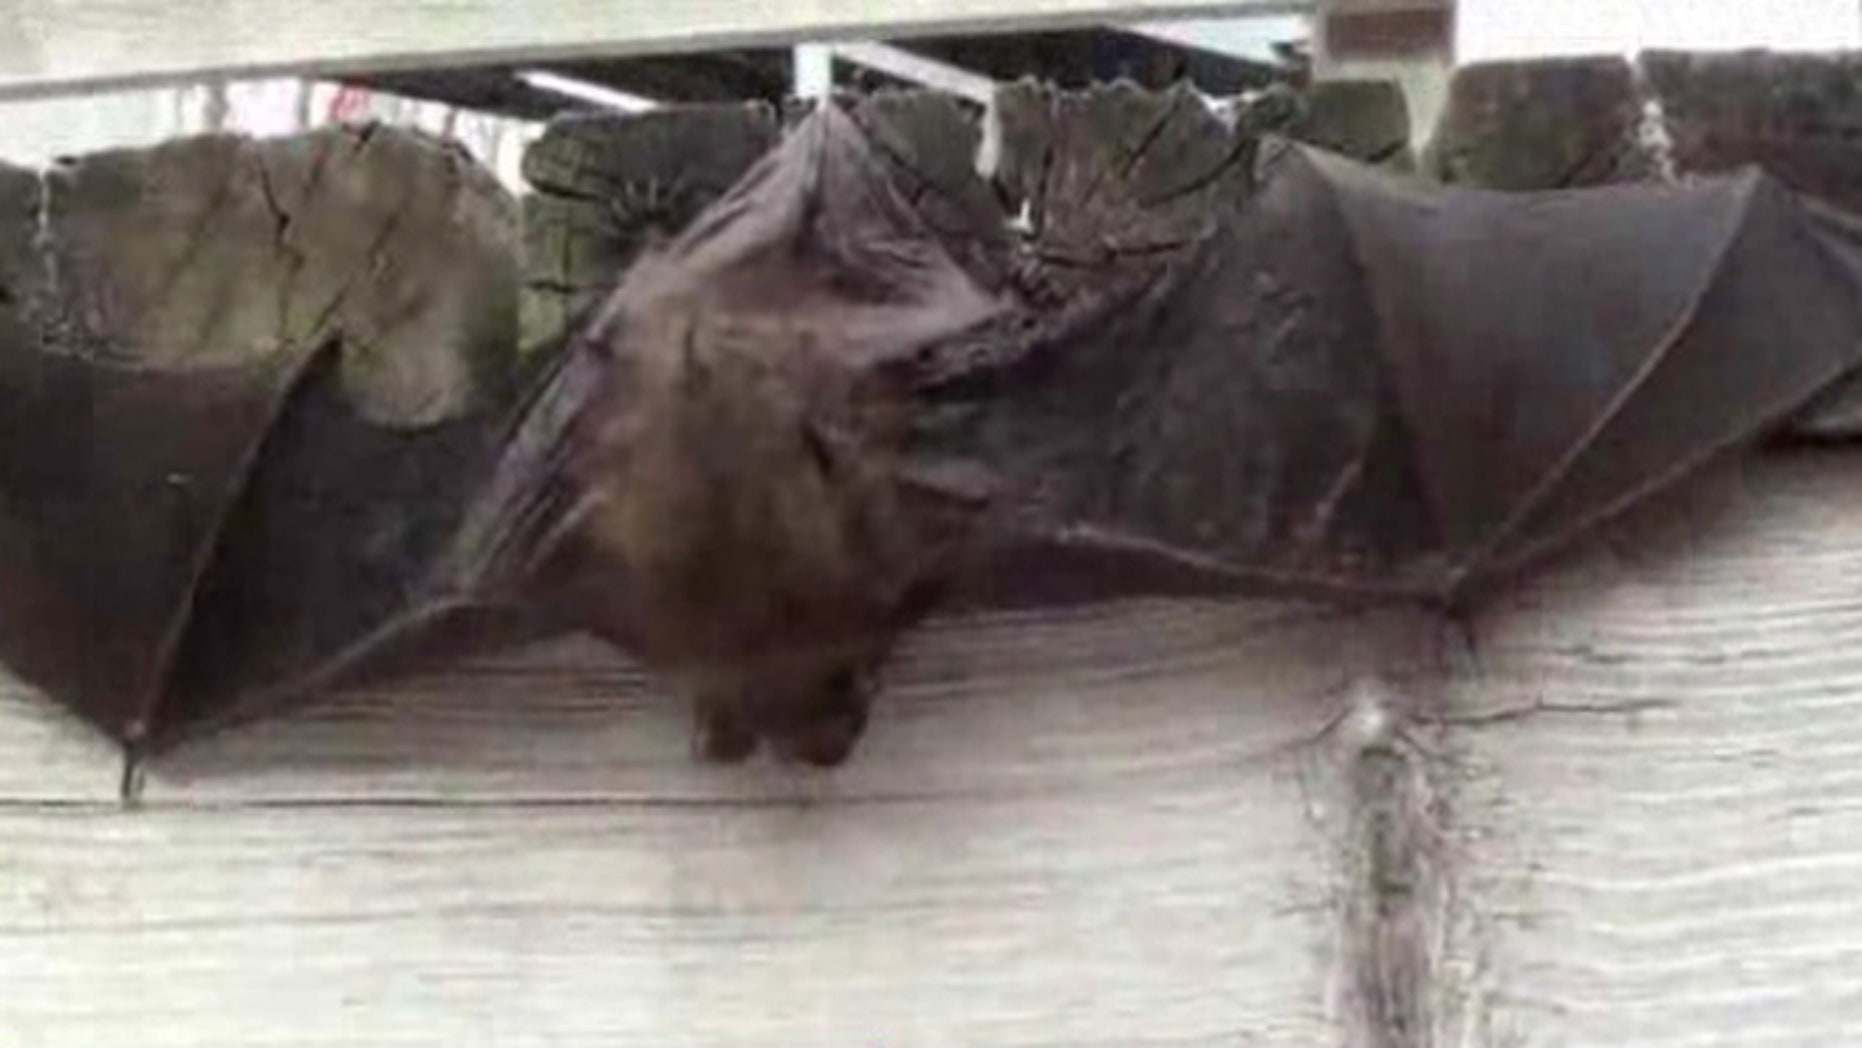 Drought conditions are impacting the population of bats in Yolo County in Northern California.